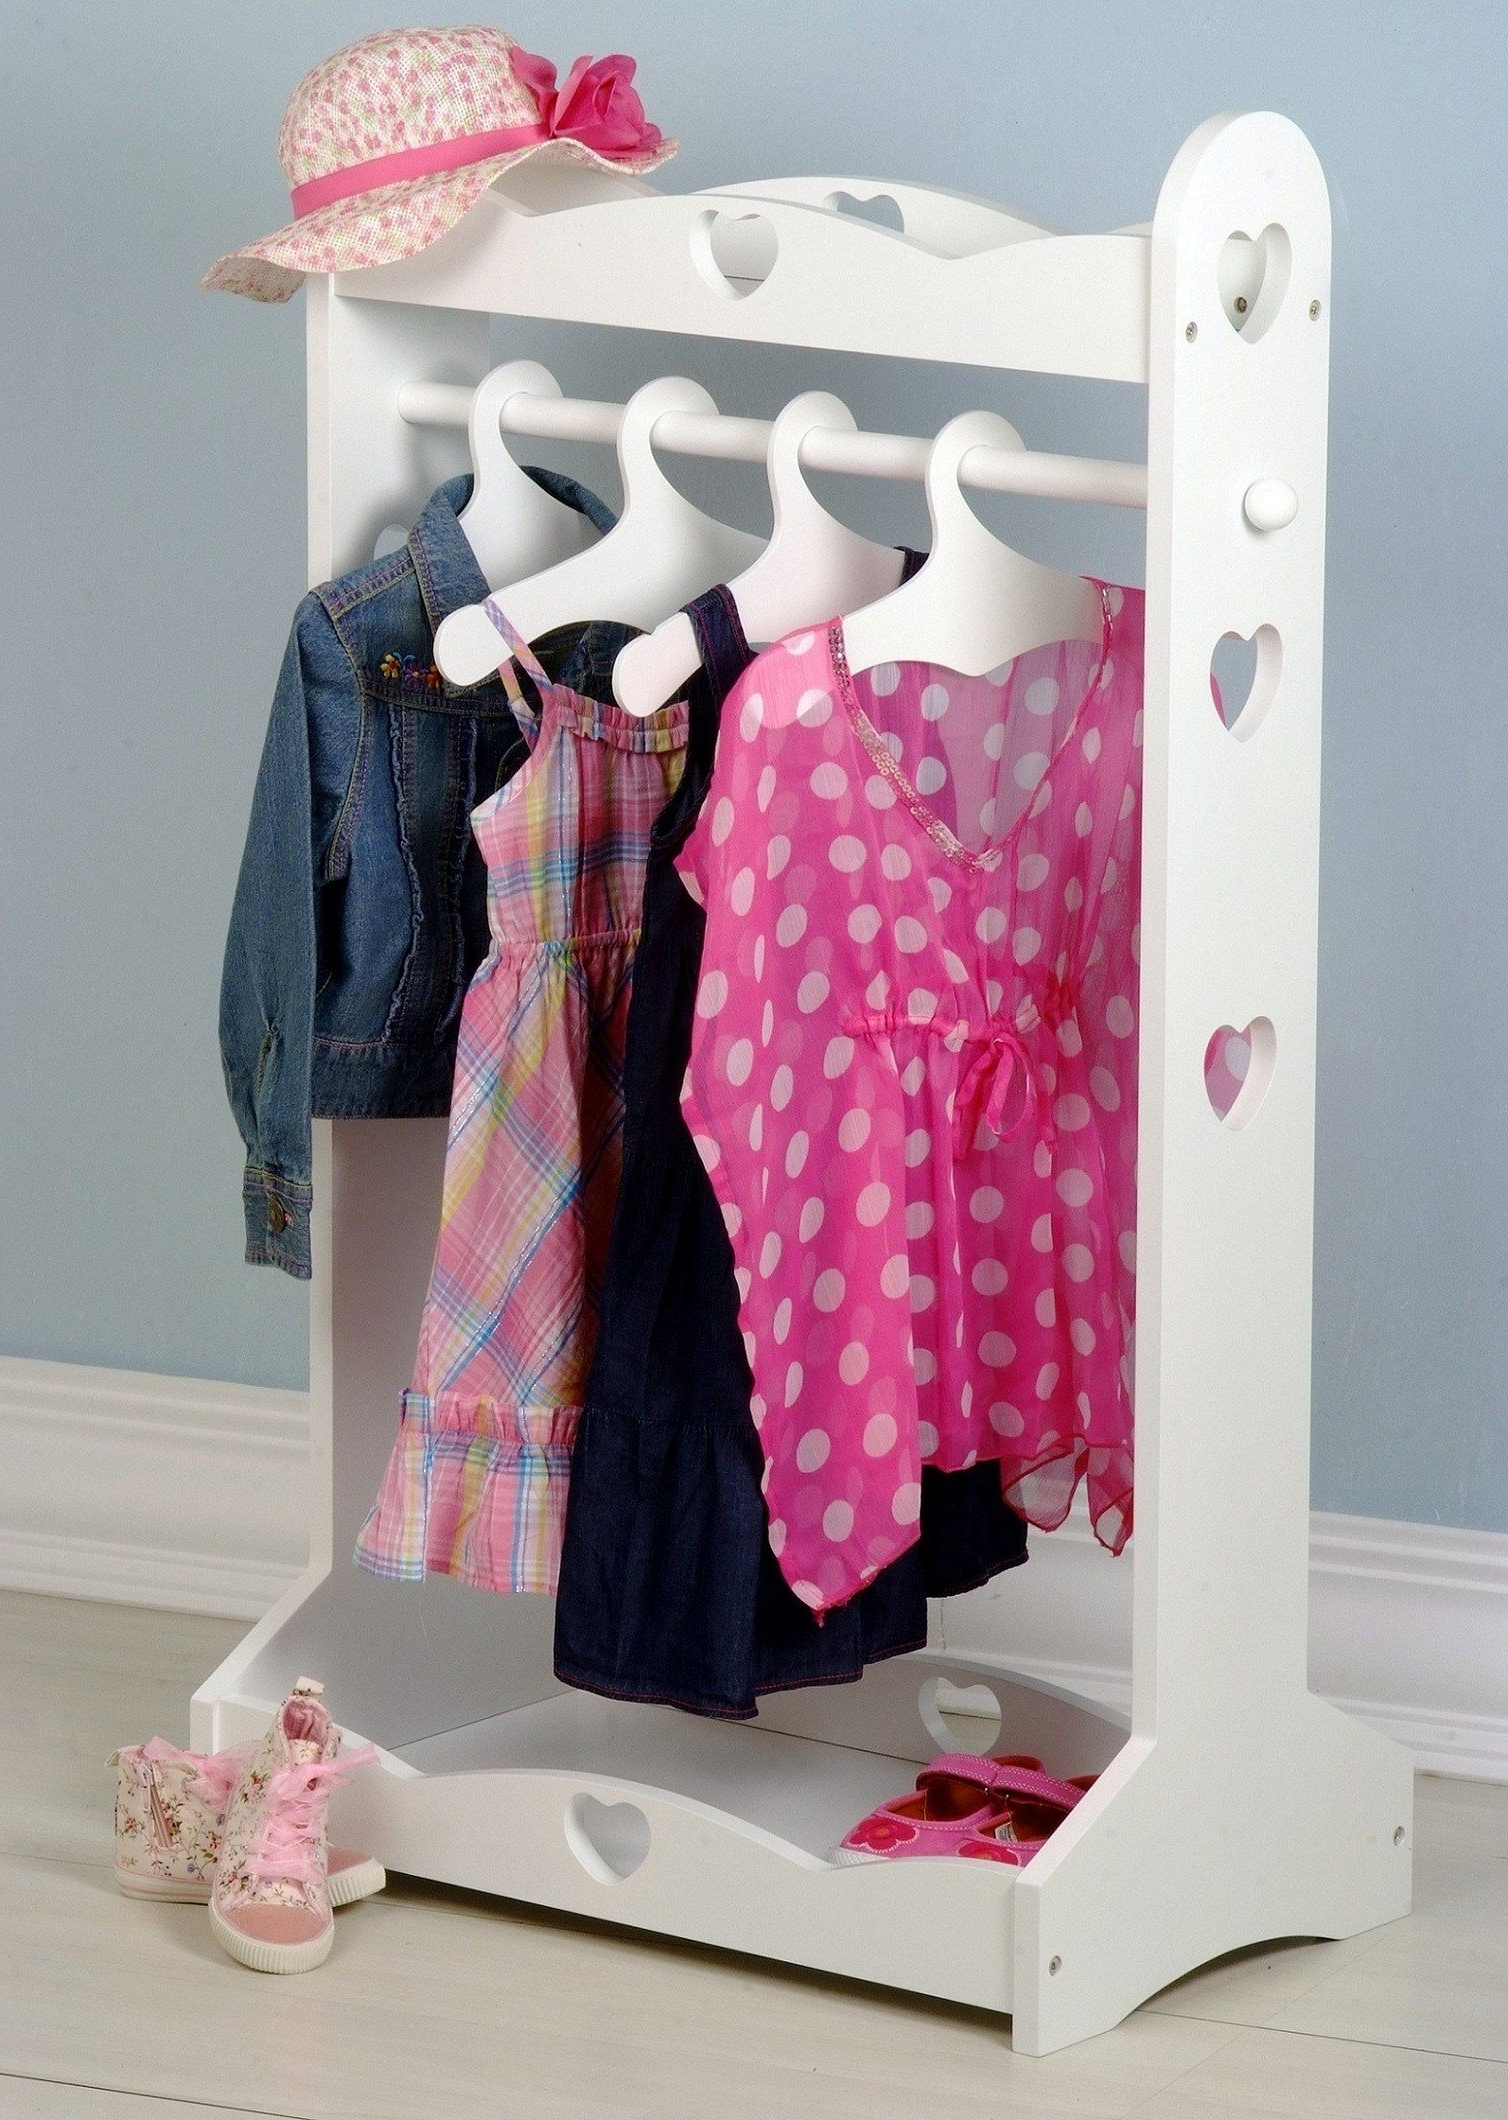 Kids Dress Up Wardrobes Closet Regarding Well Known Top Photo Of Kids Dress Up Wardrobe Closet Luxury Wardrobe (View 8 of 15)